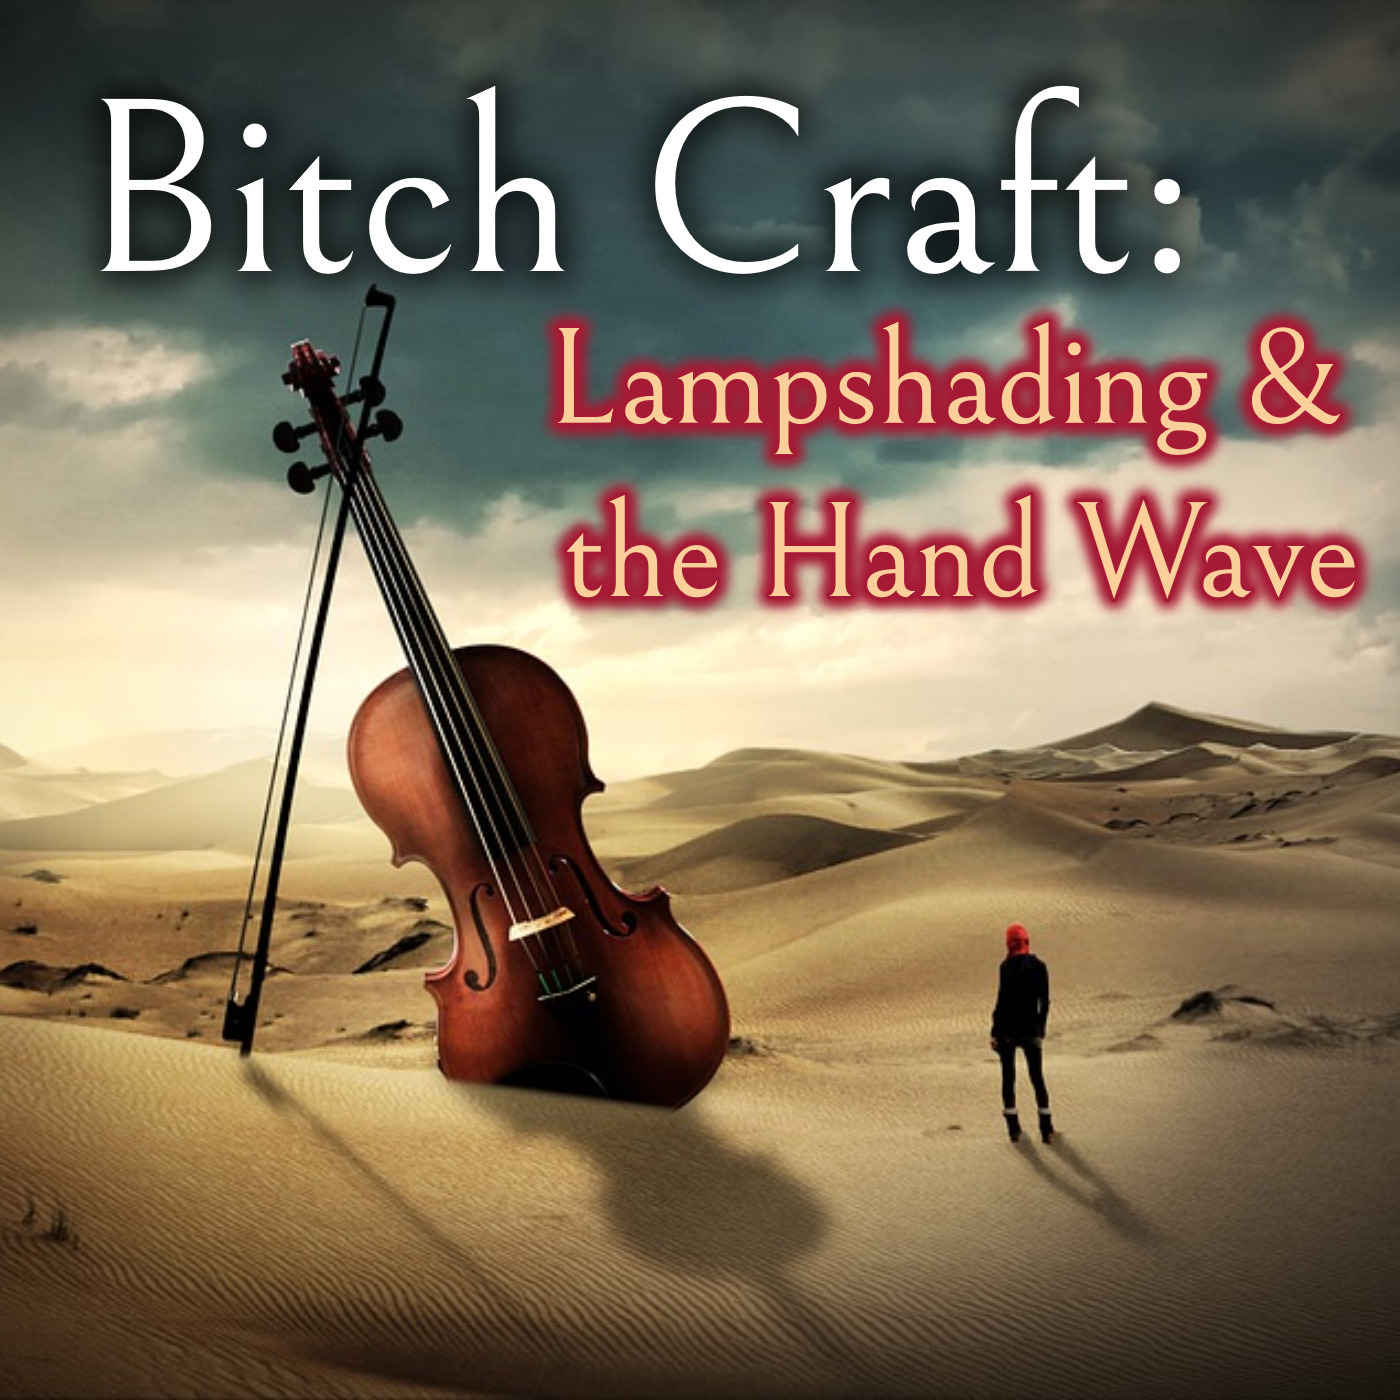 Bitch Craft - Lampshading & the Handwave